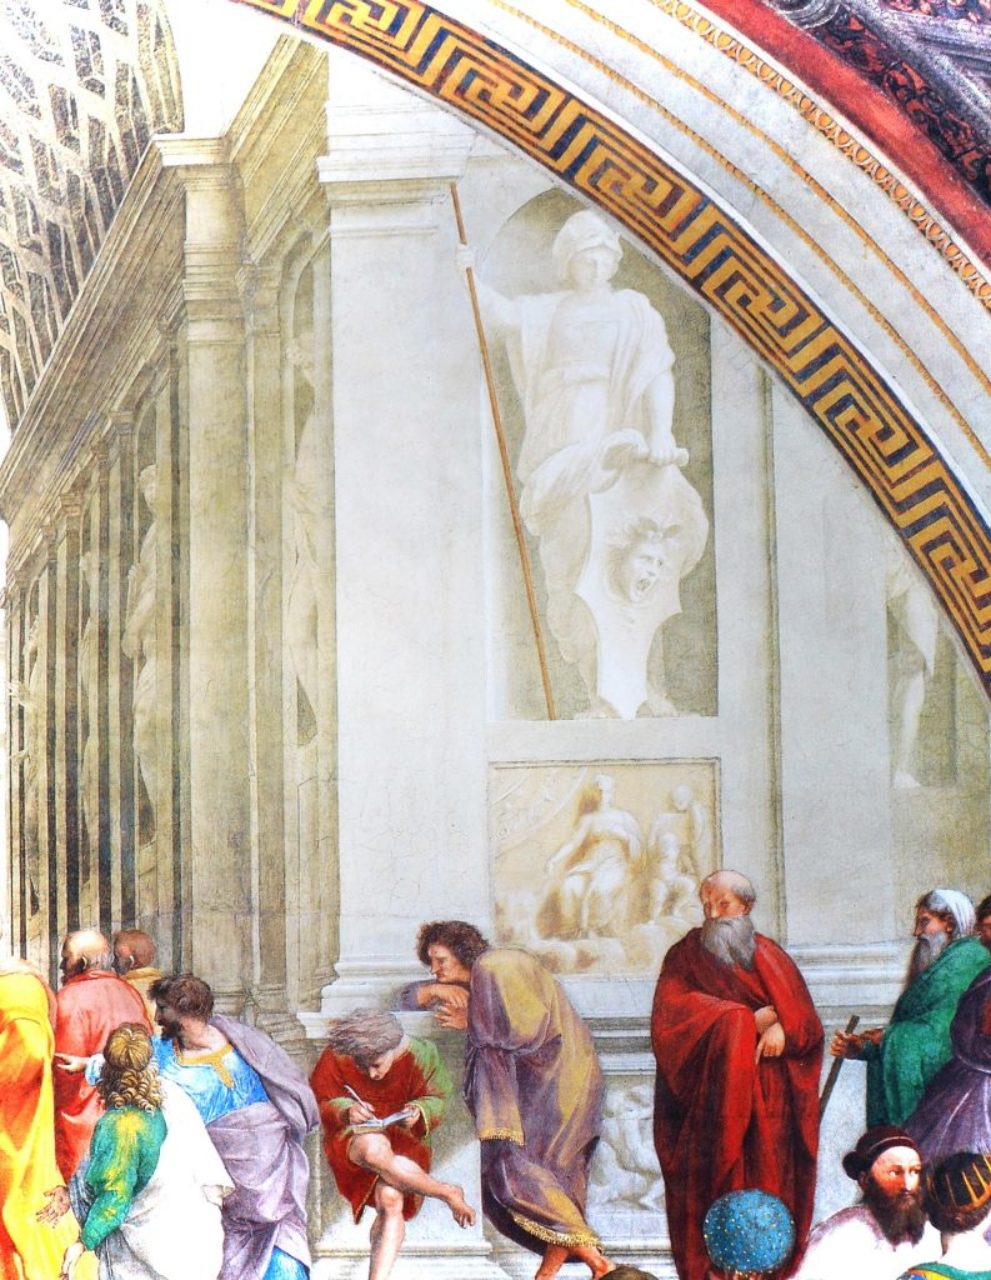 Figure 8: Detail of School of Athens fresco mural; Vatican Museums, Rome (WikiArt.org).